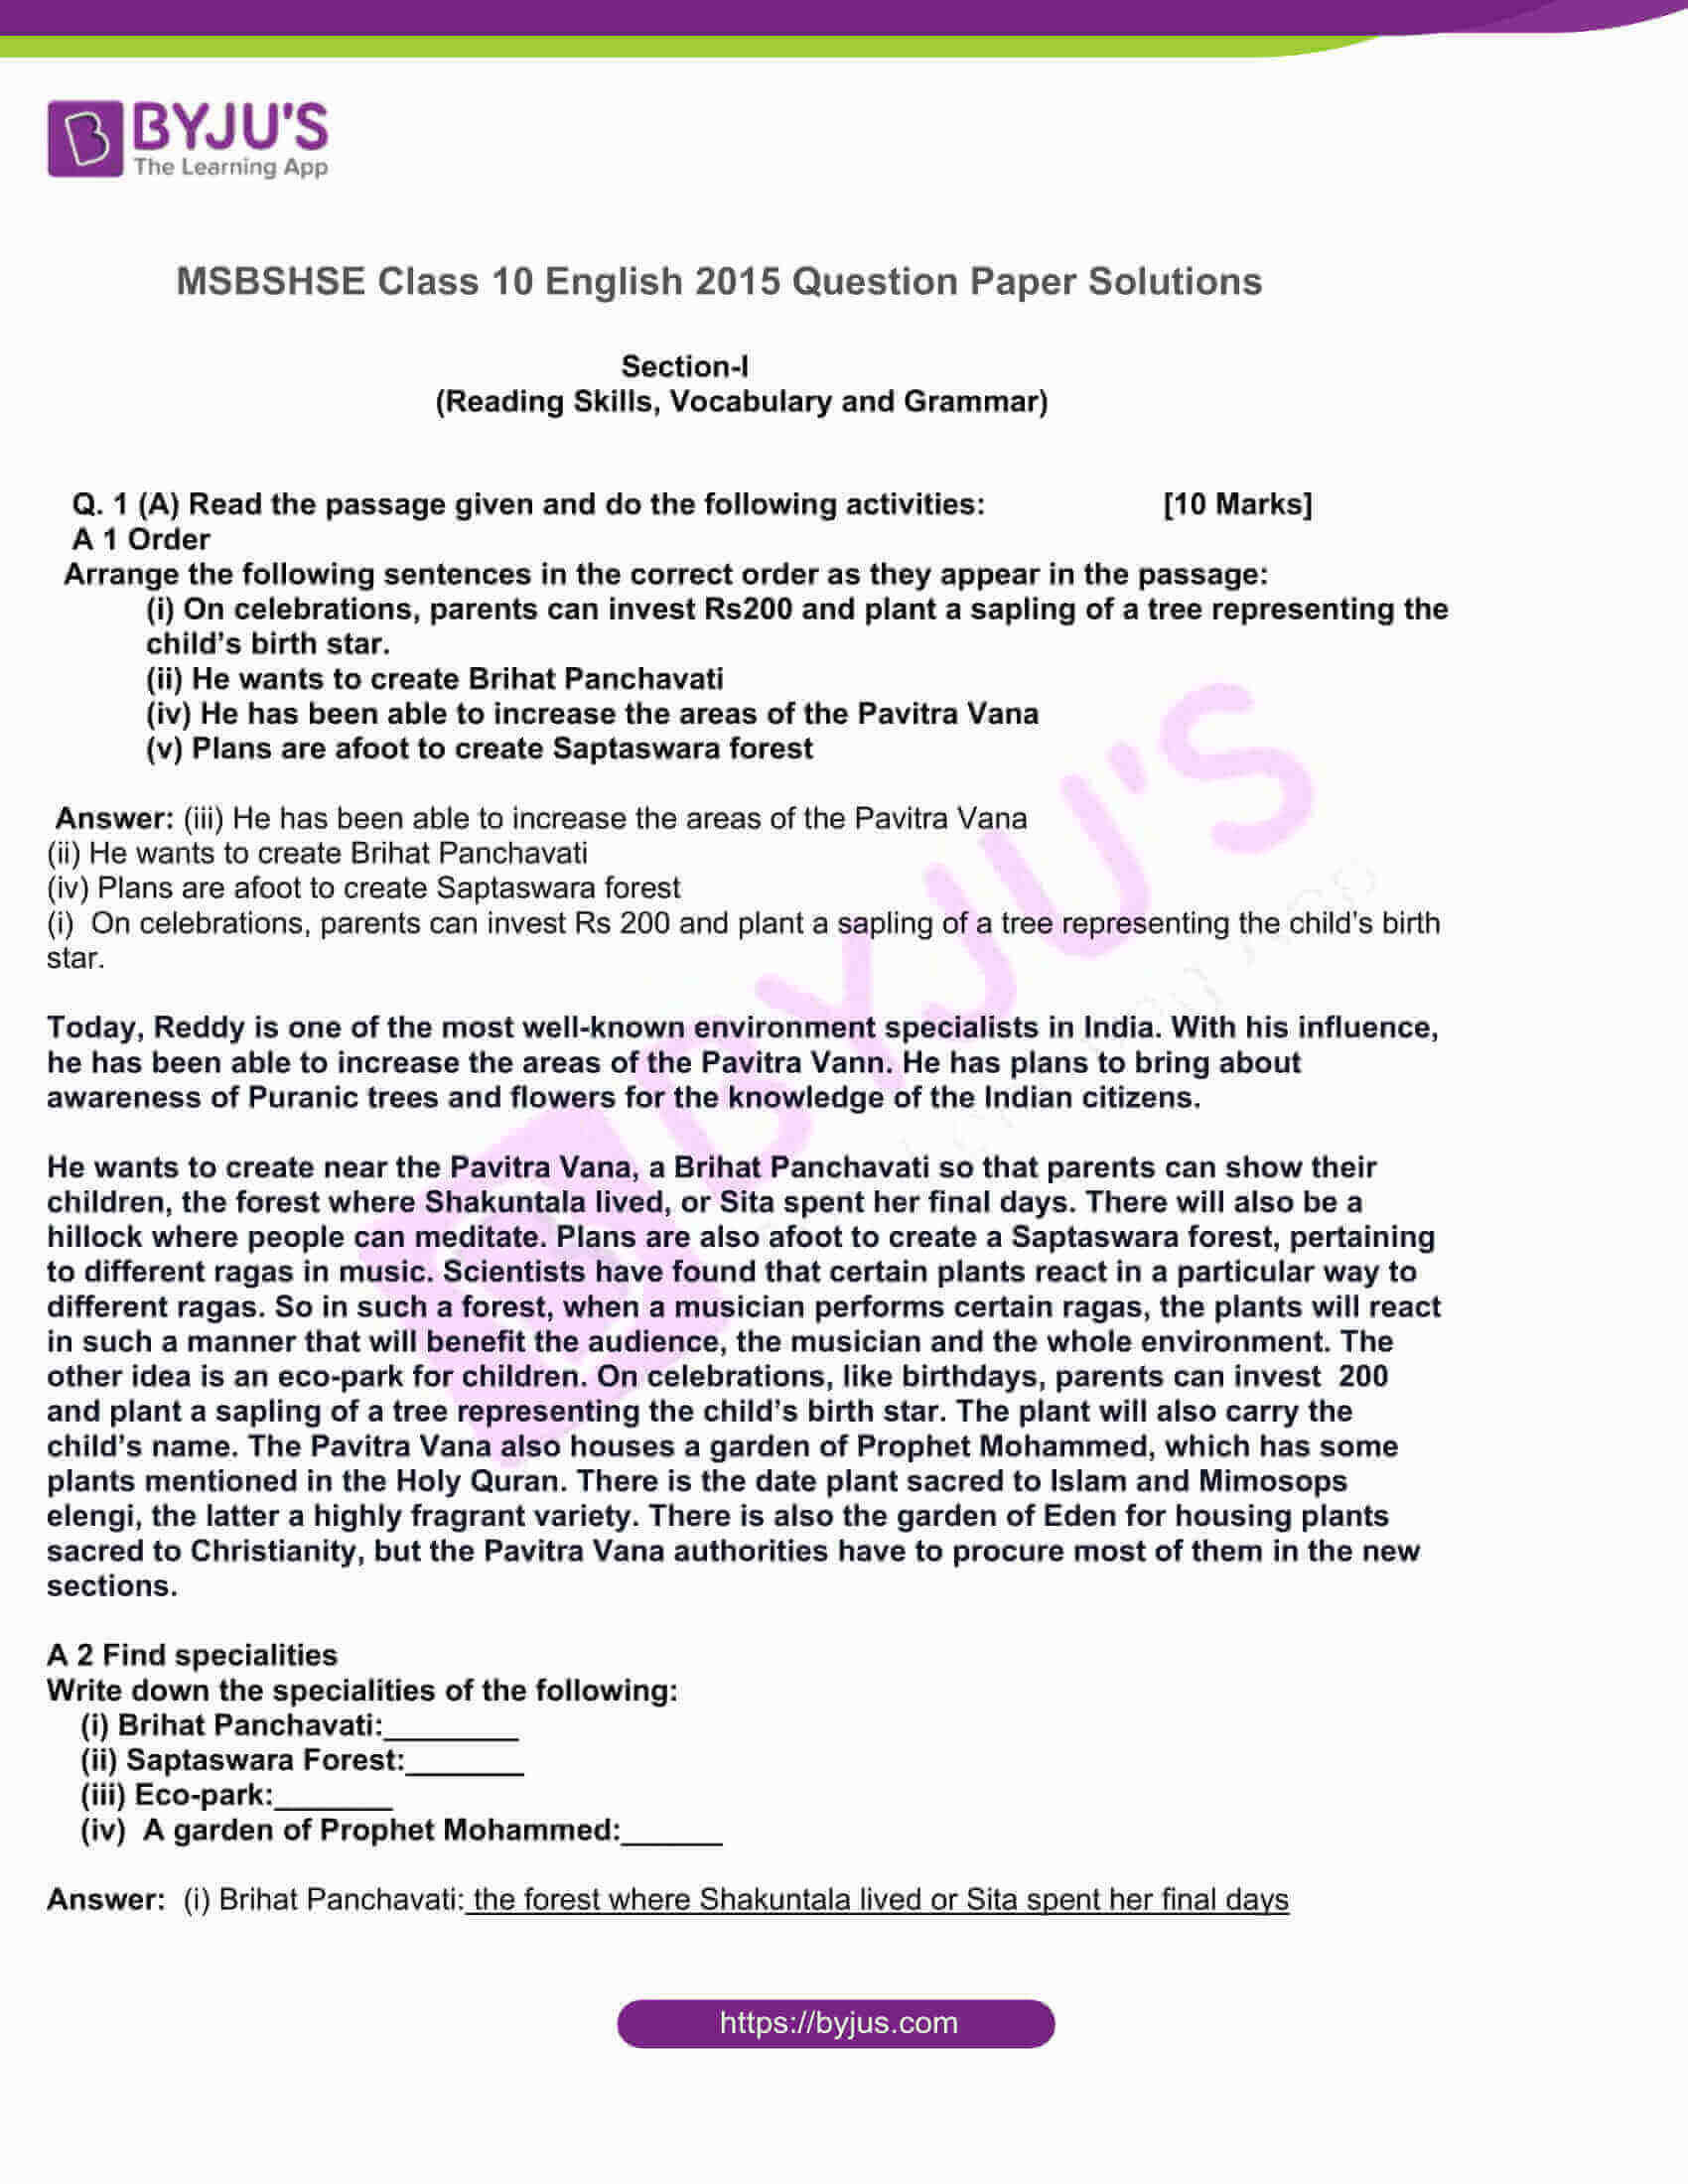 msbshse class 10 english question paper solutions 2015 01